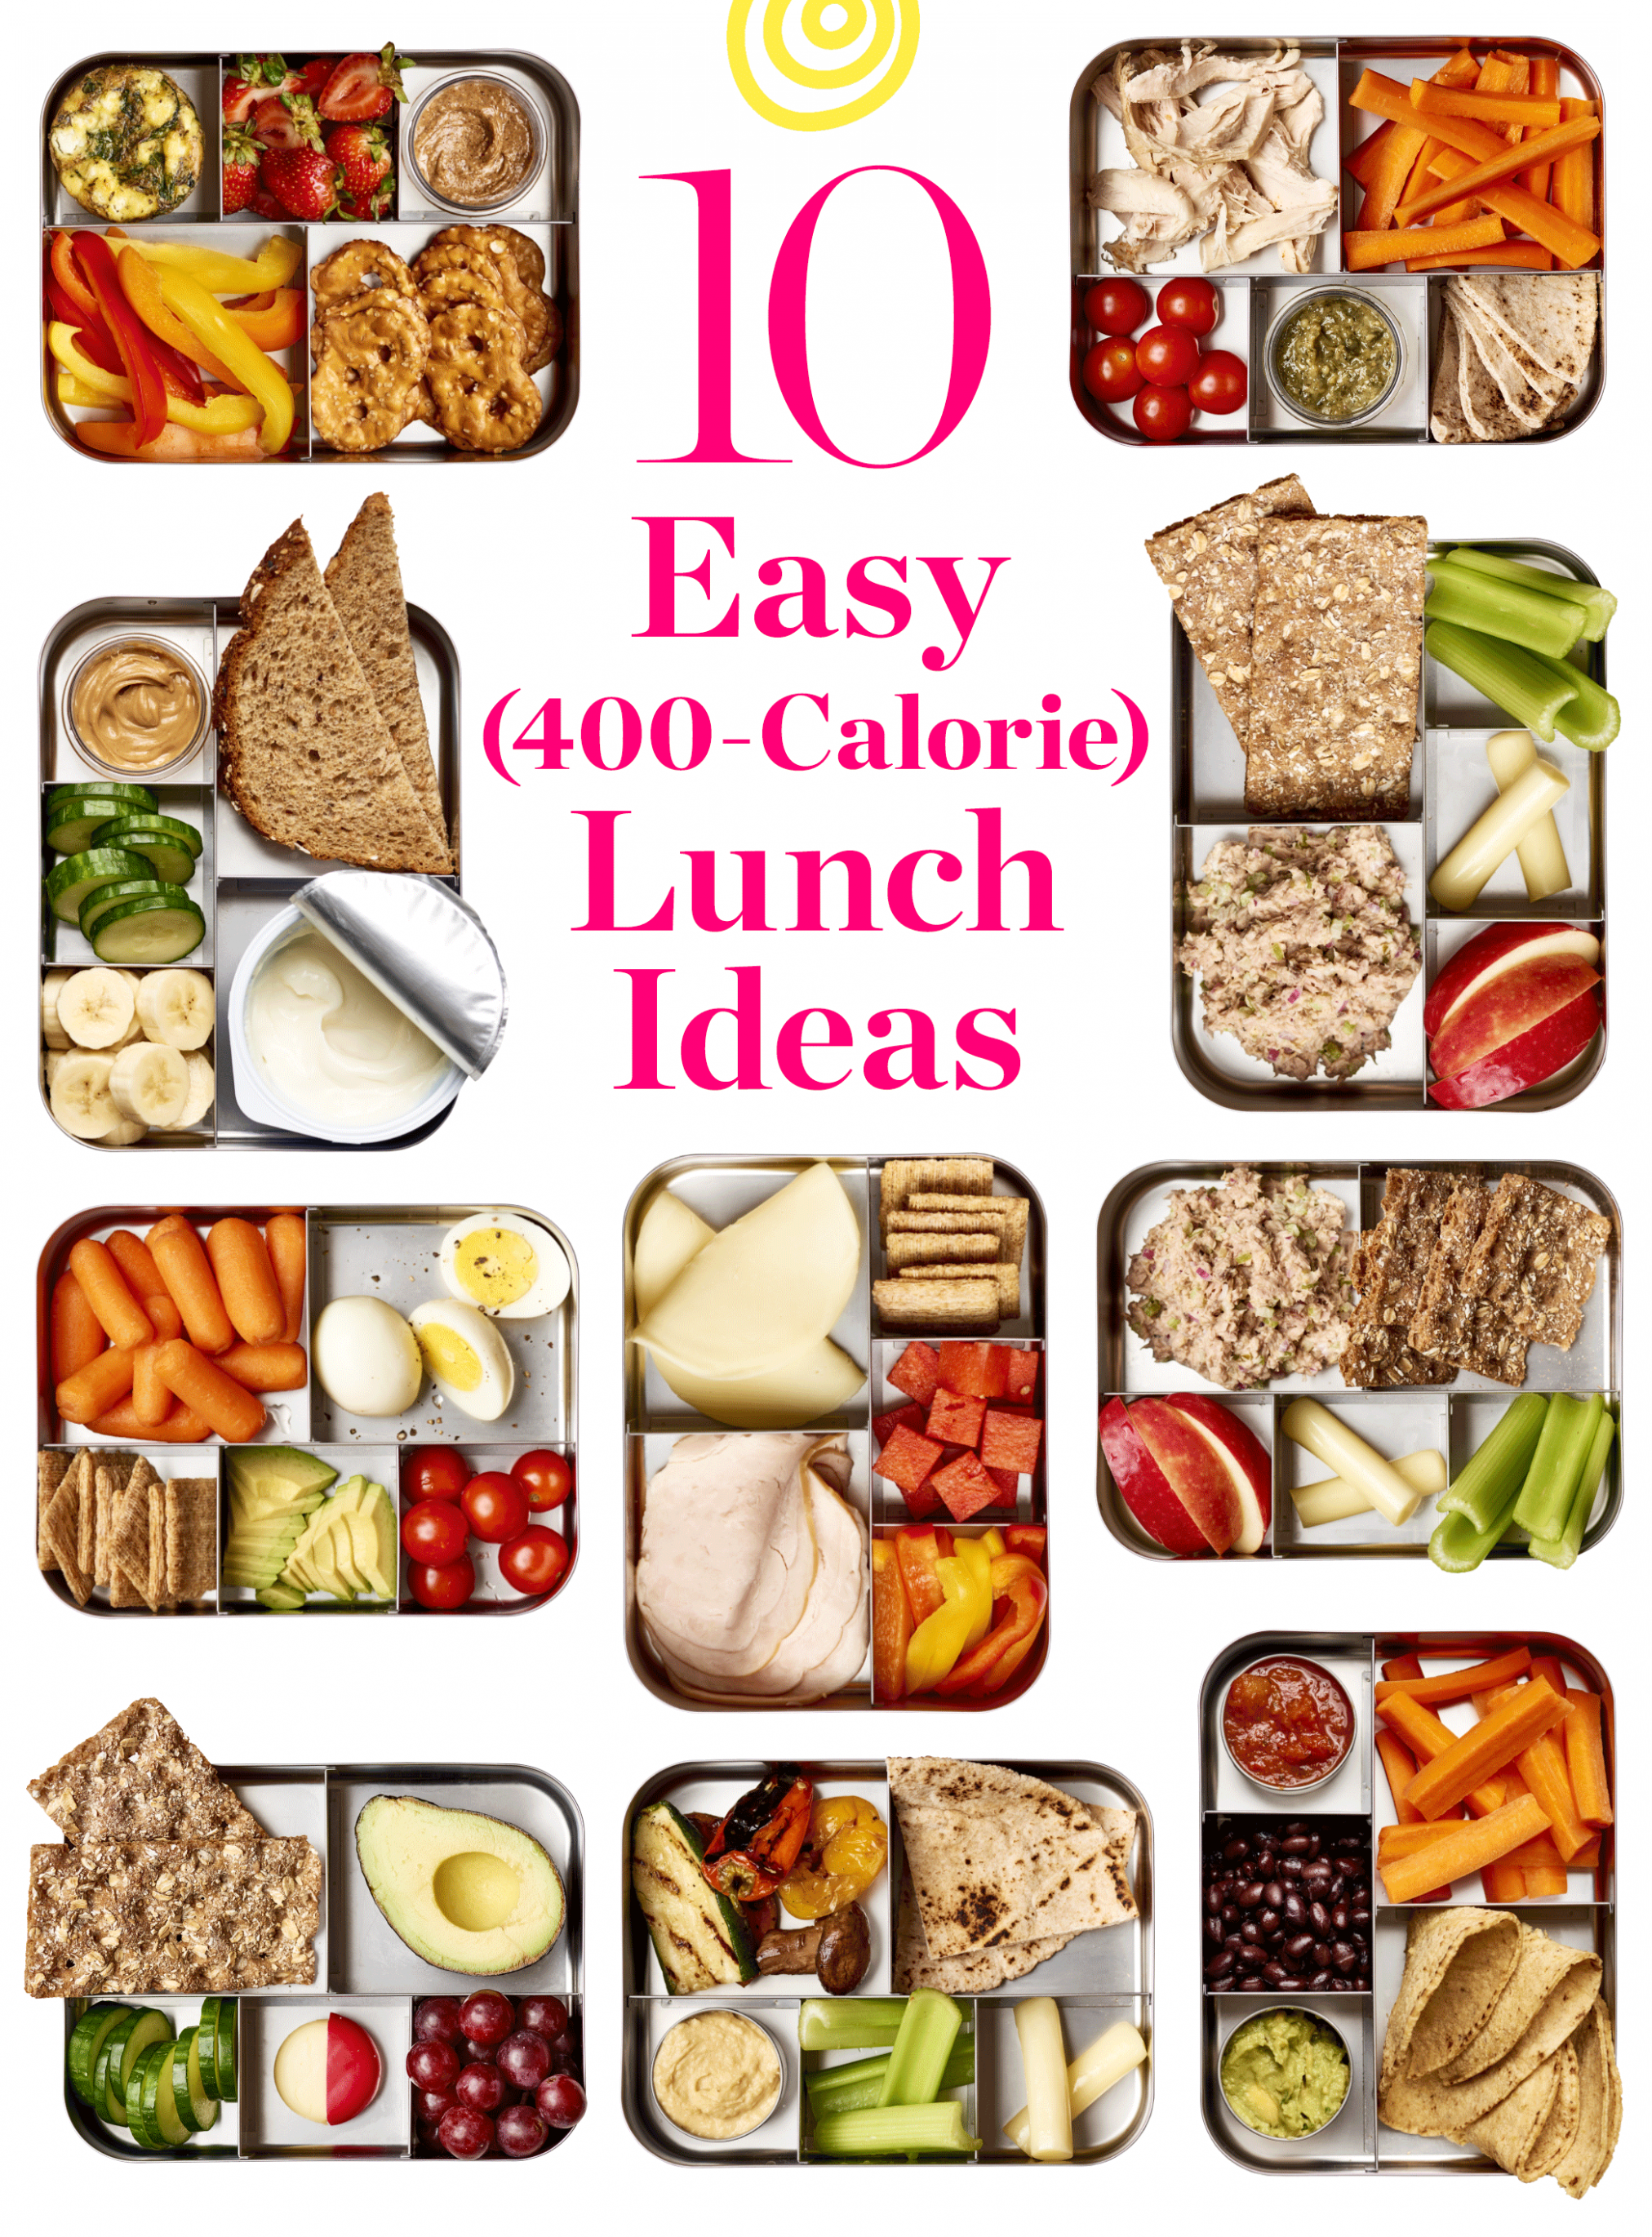 9 Easy Lunch Ideas Under 9 Calories | Kitchn - Simple Recipes Low Calorie